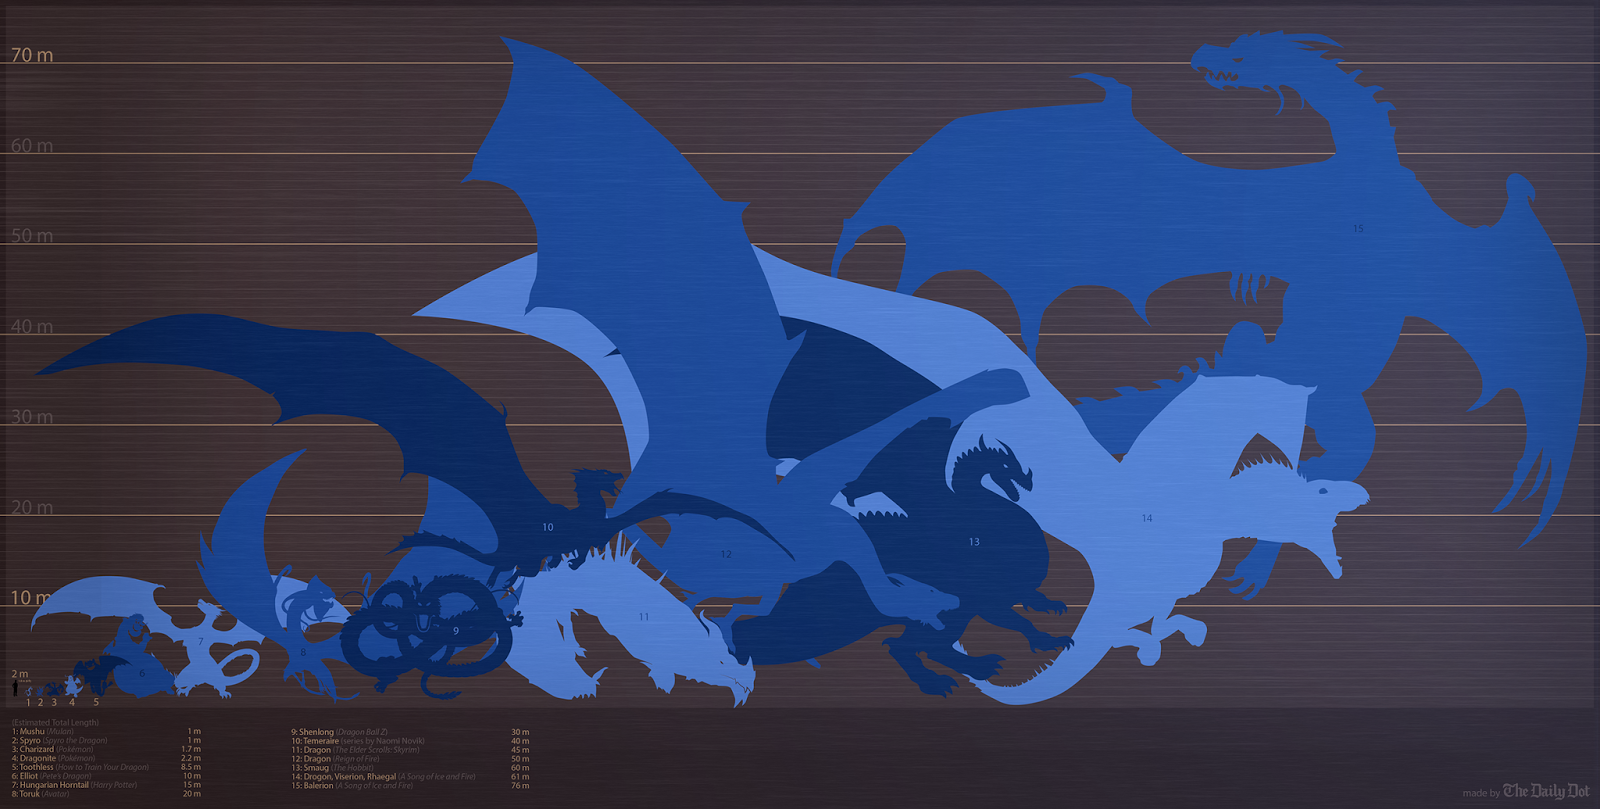 game of thrones dragon, hobbit, smaug, charizard pokemon shen long